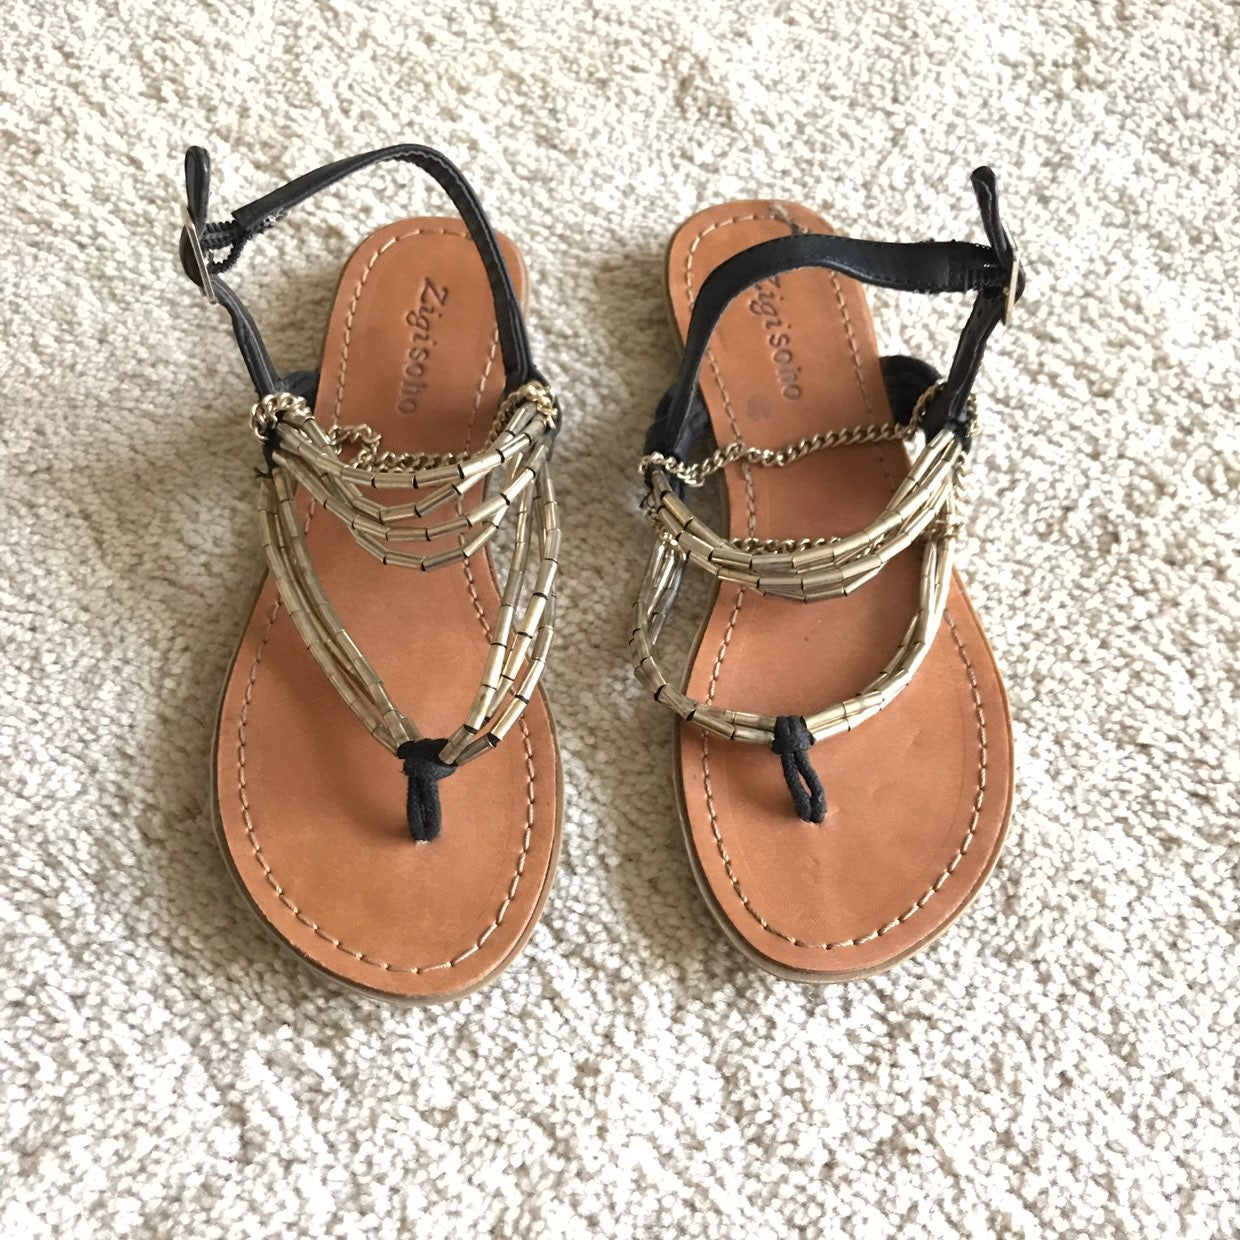 Black and gold sandals